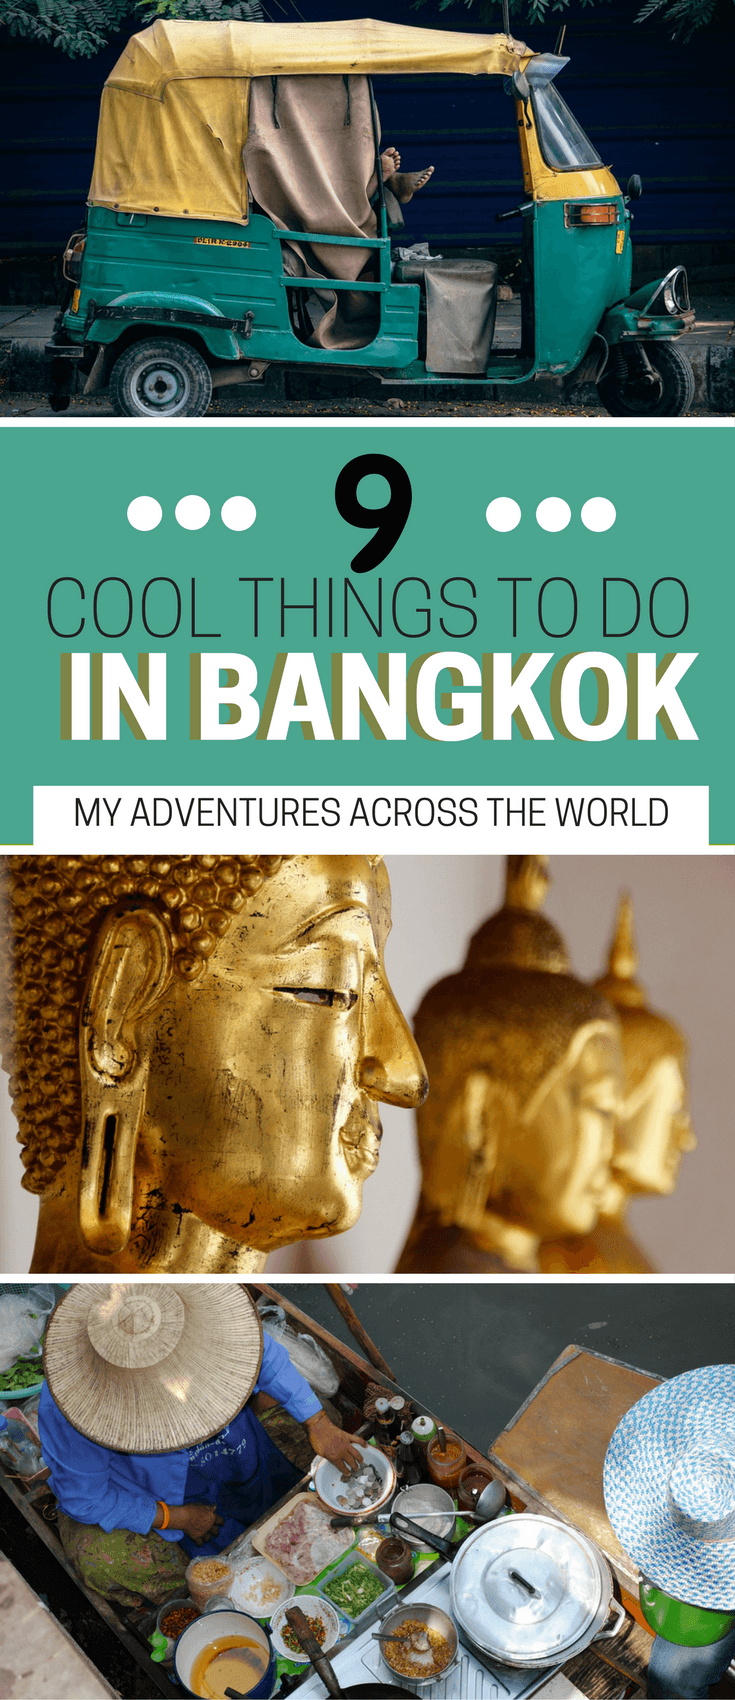 Learn about the incredible things to do in Bangkok , Thailand - via @clautavani